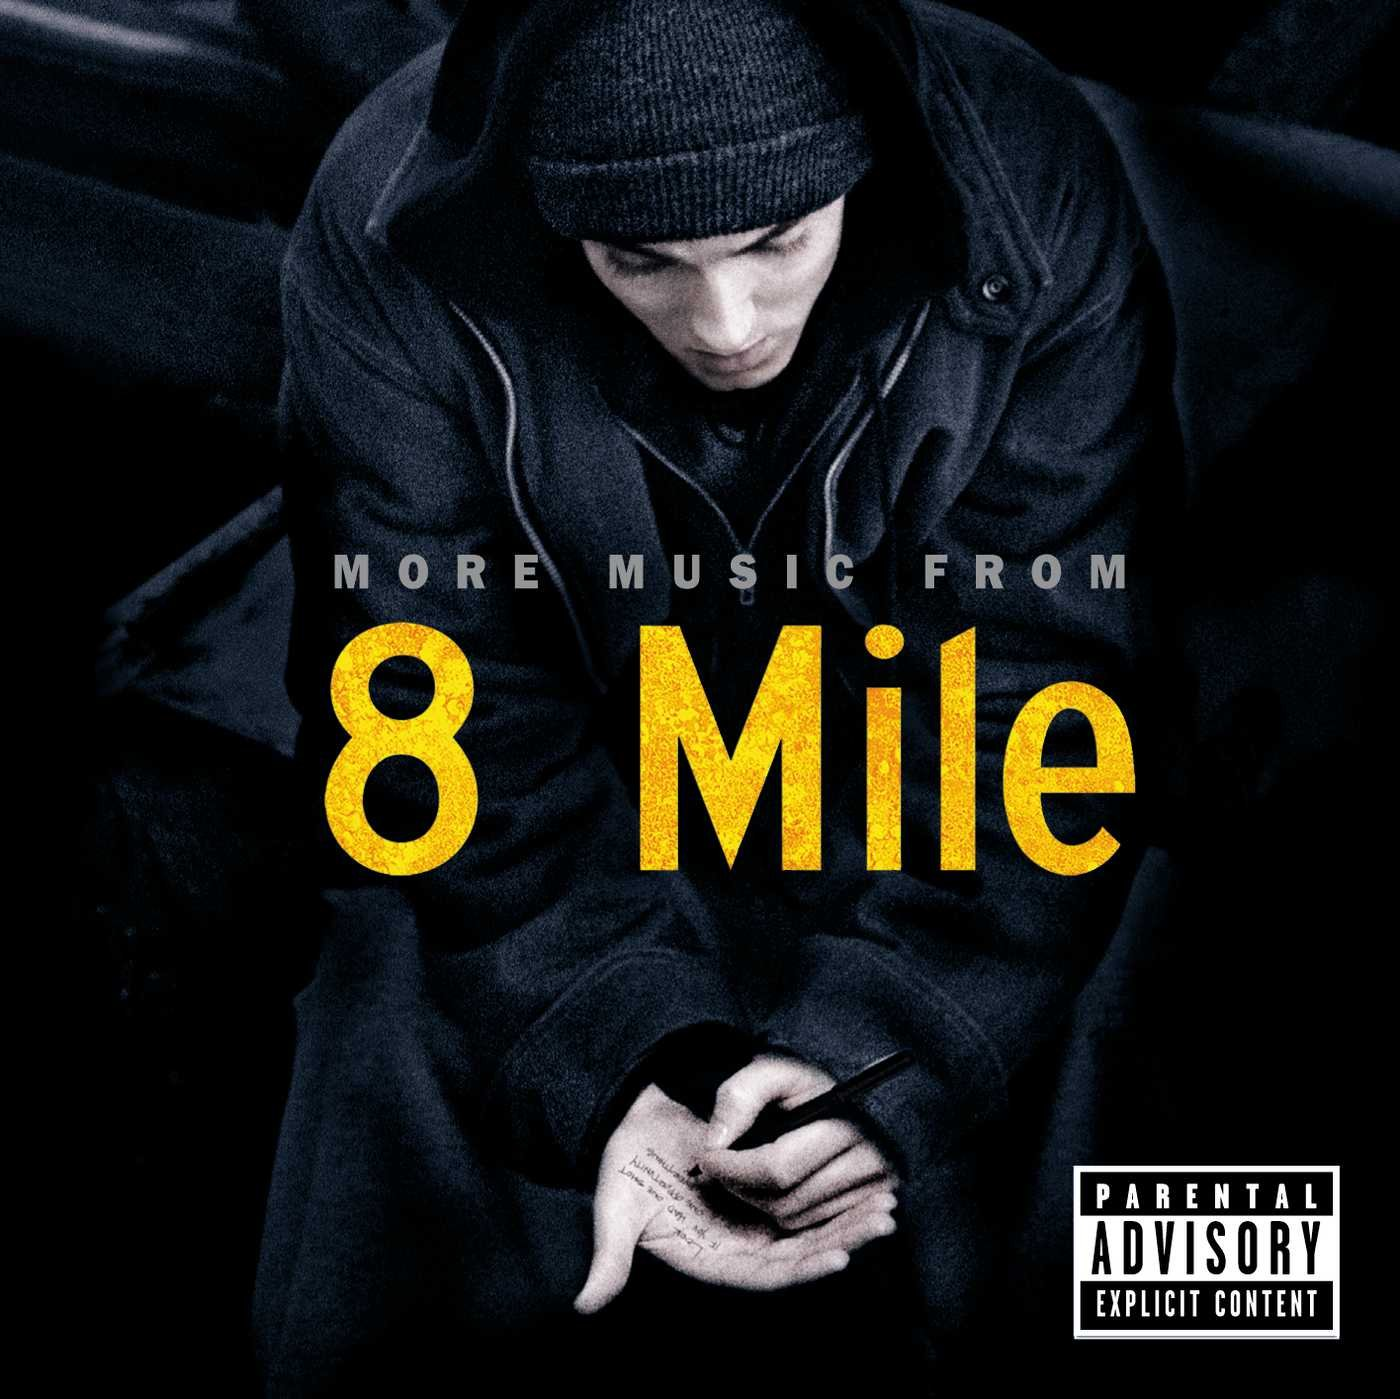 Bildergebnis für more music from 8 mile